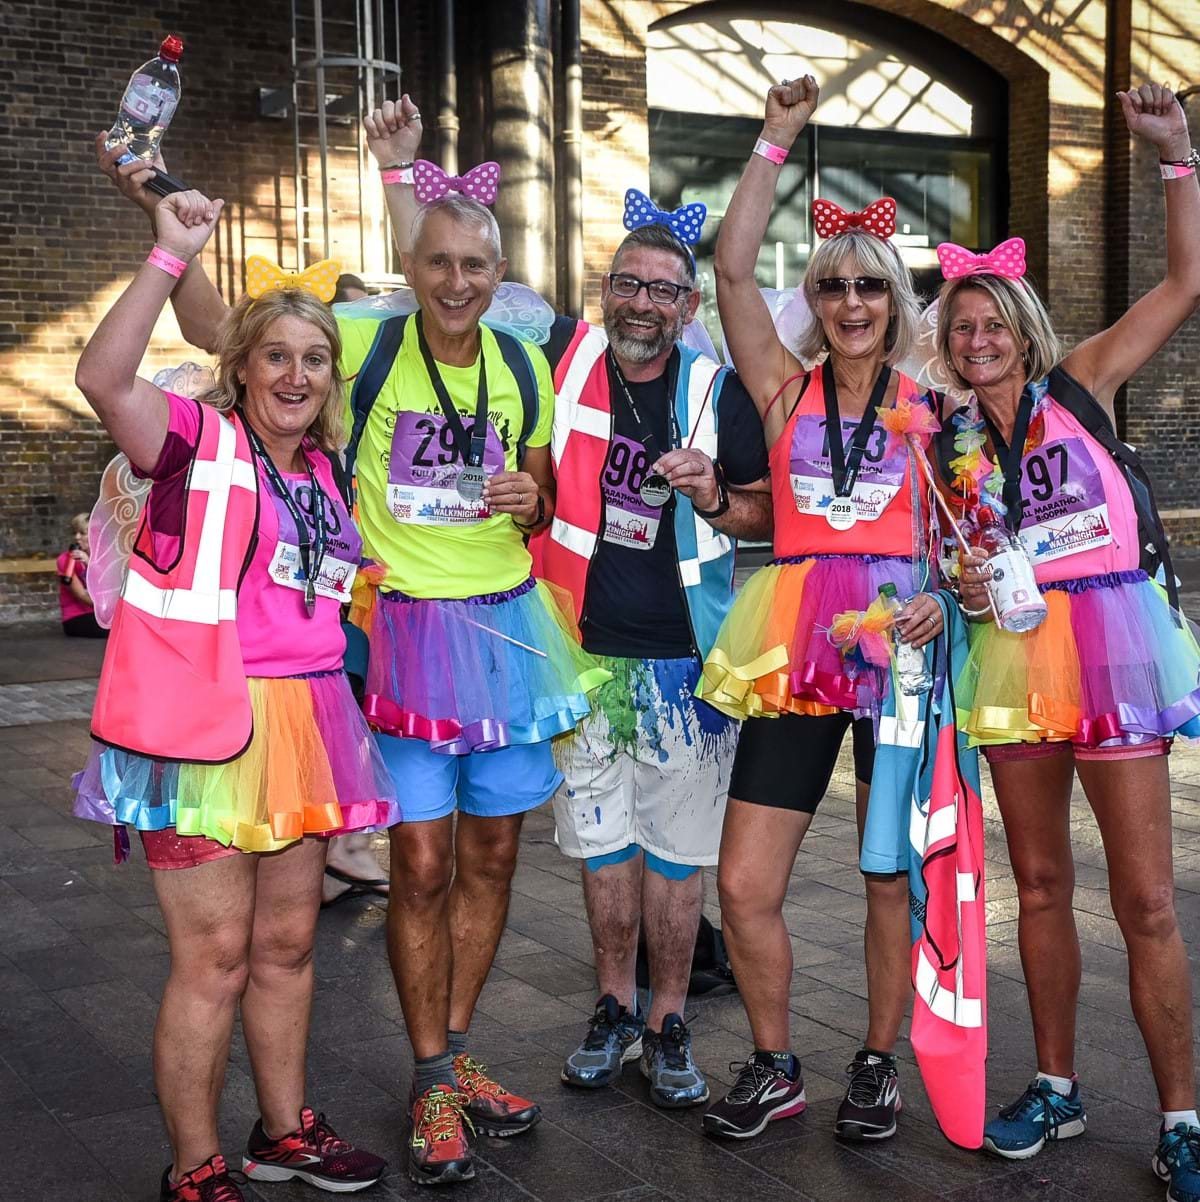 Walk the Night participants Tower Bridge London together against cancer